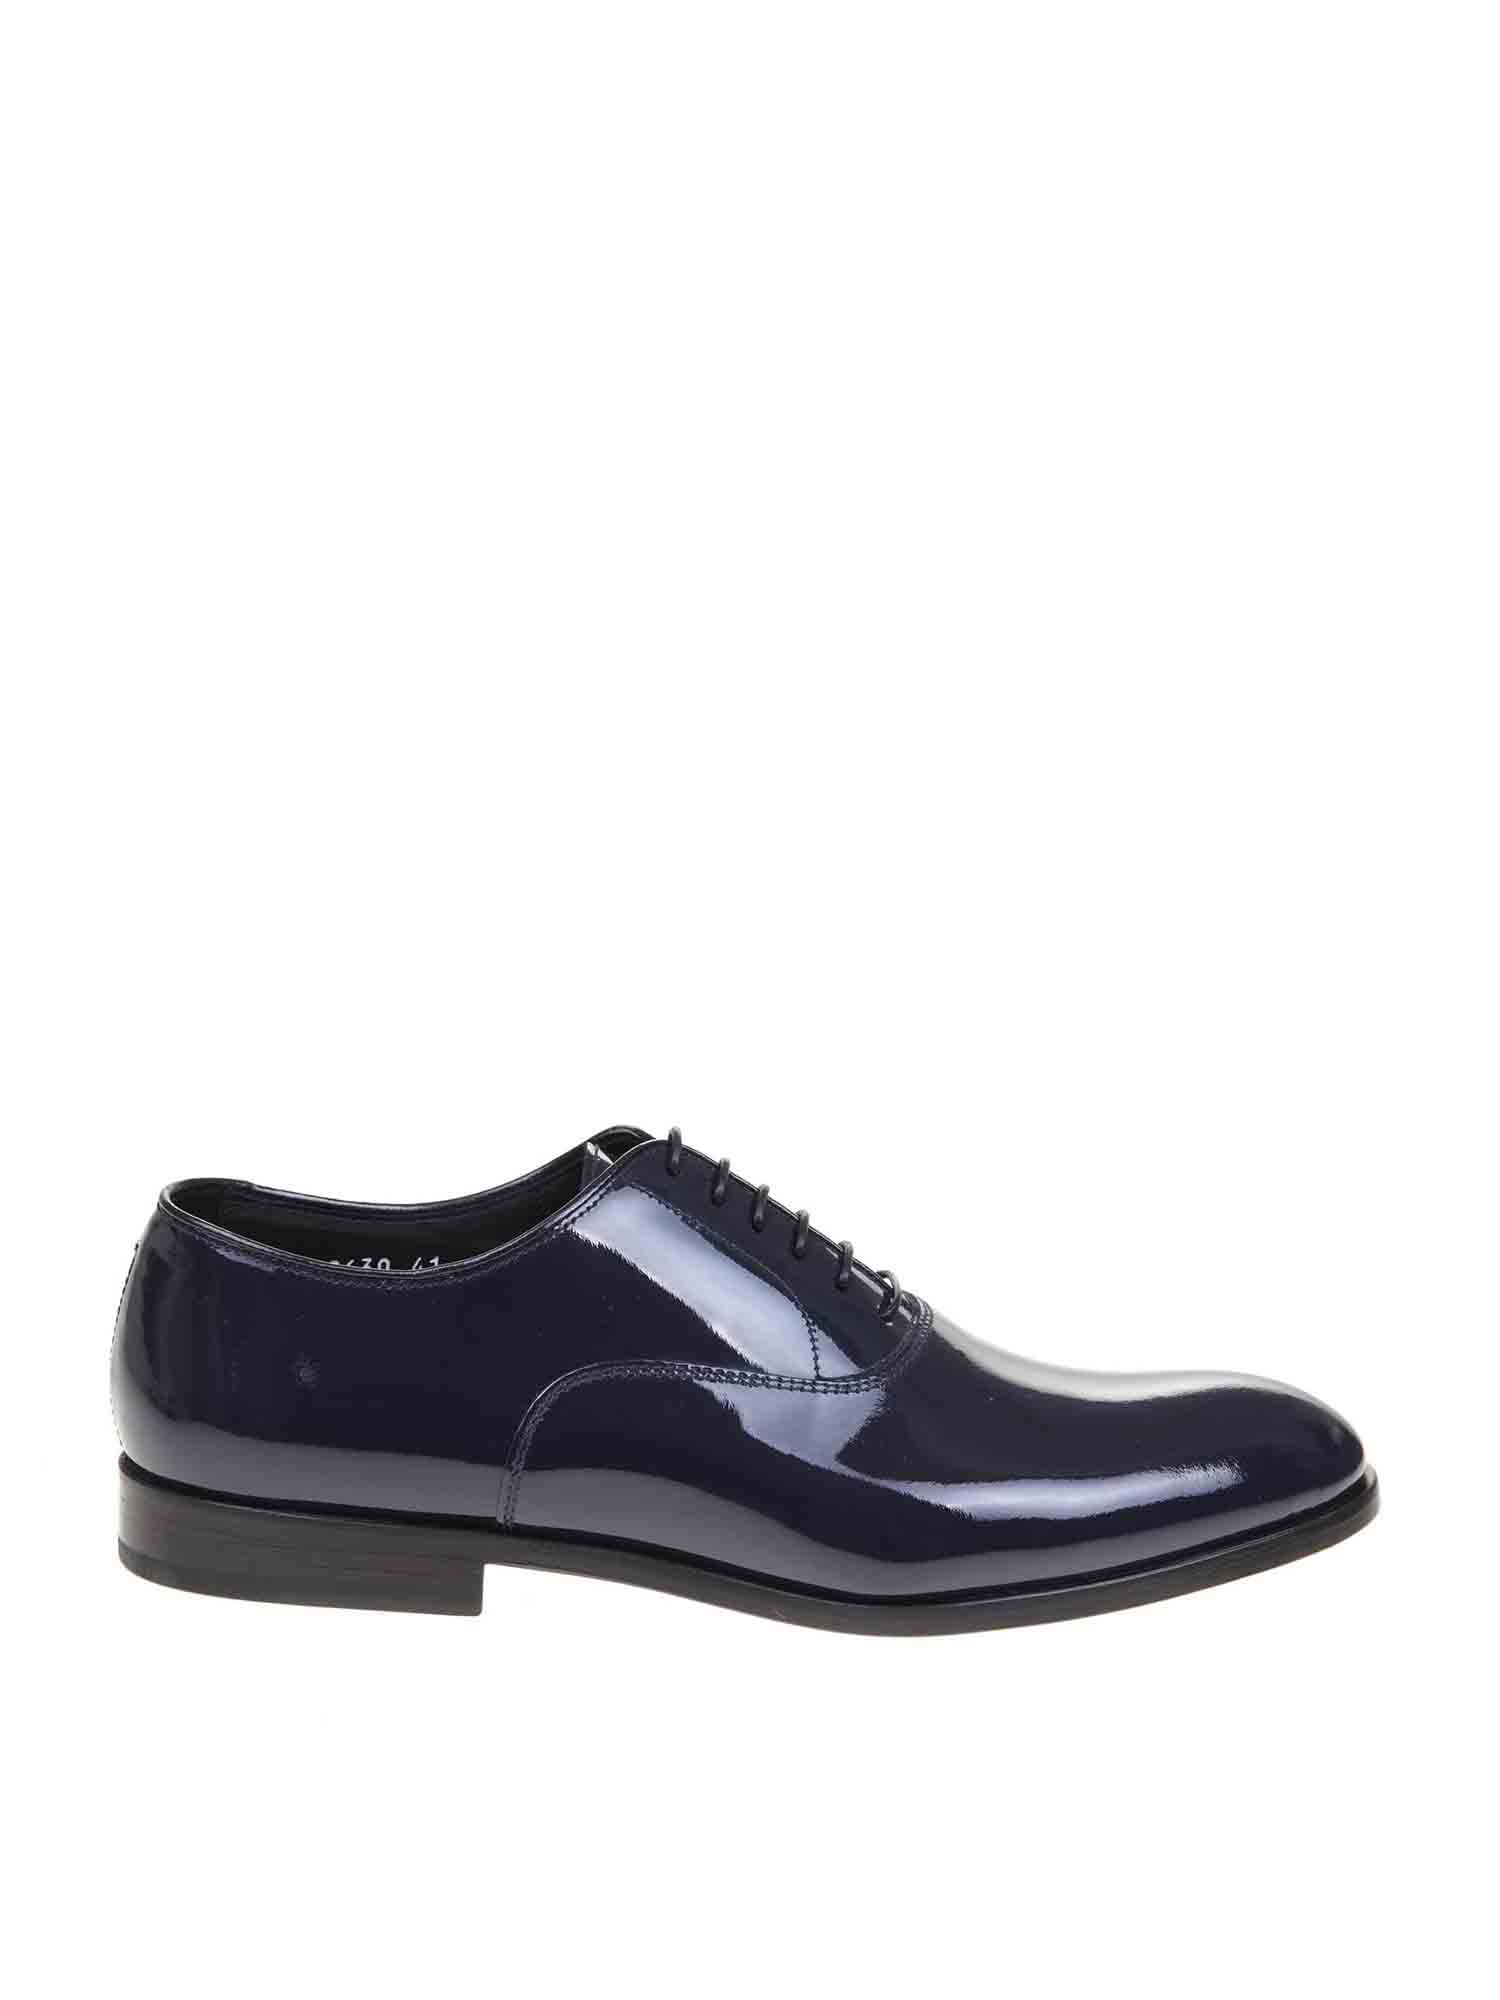 Doucal's Brogues OXFORD IN SHINY BLUE LEATHER